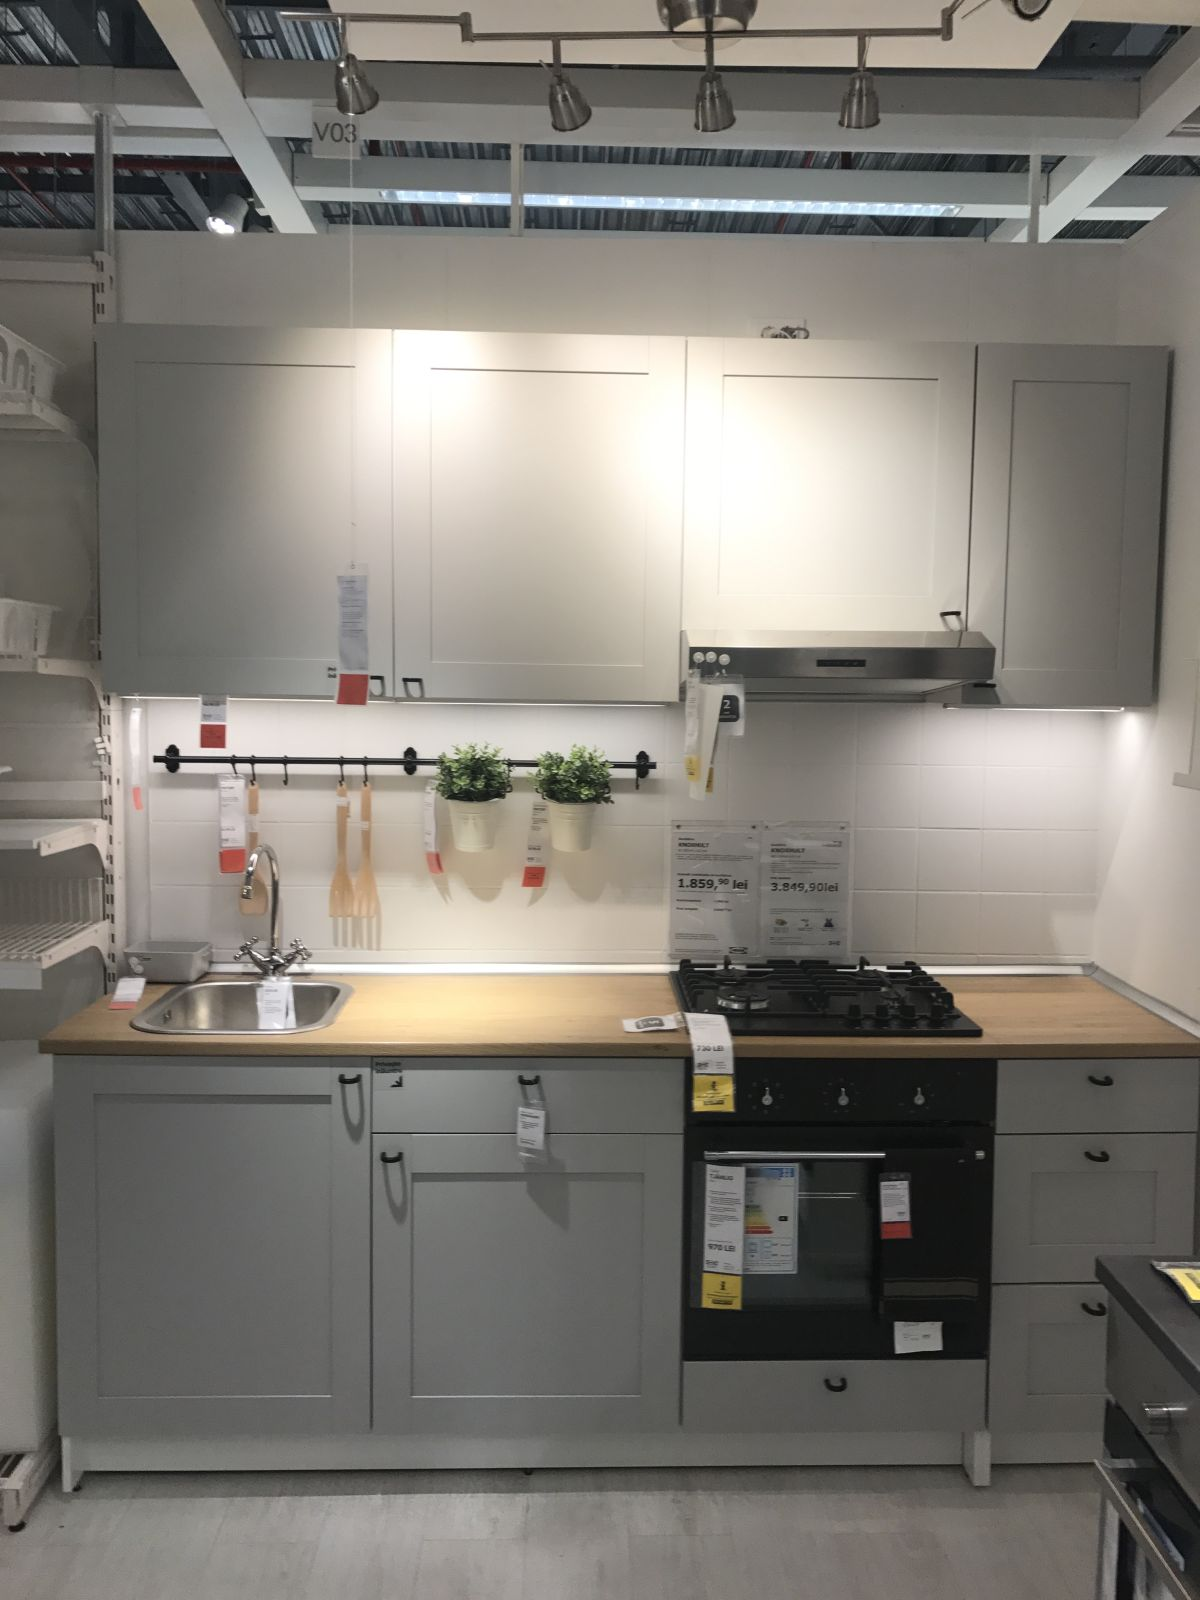 Beau Basic IKEA Kitchen Designs Are The Easiest To Install As A DIY Project.